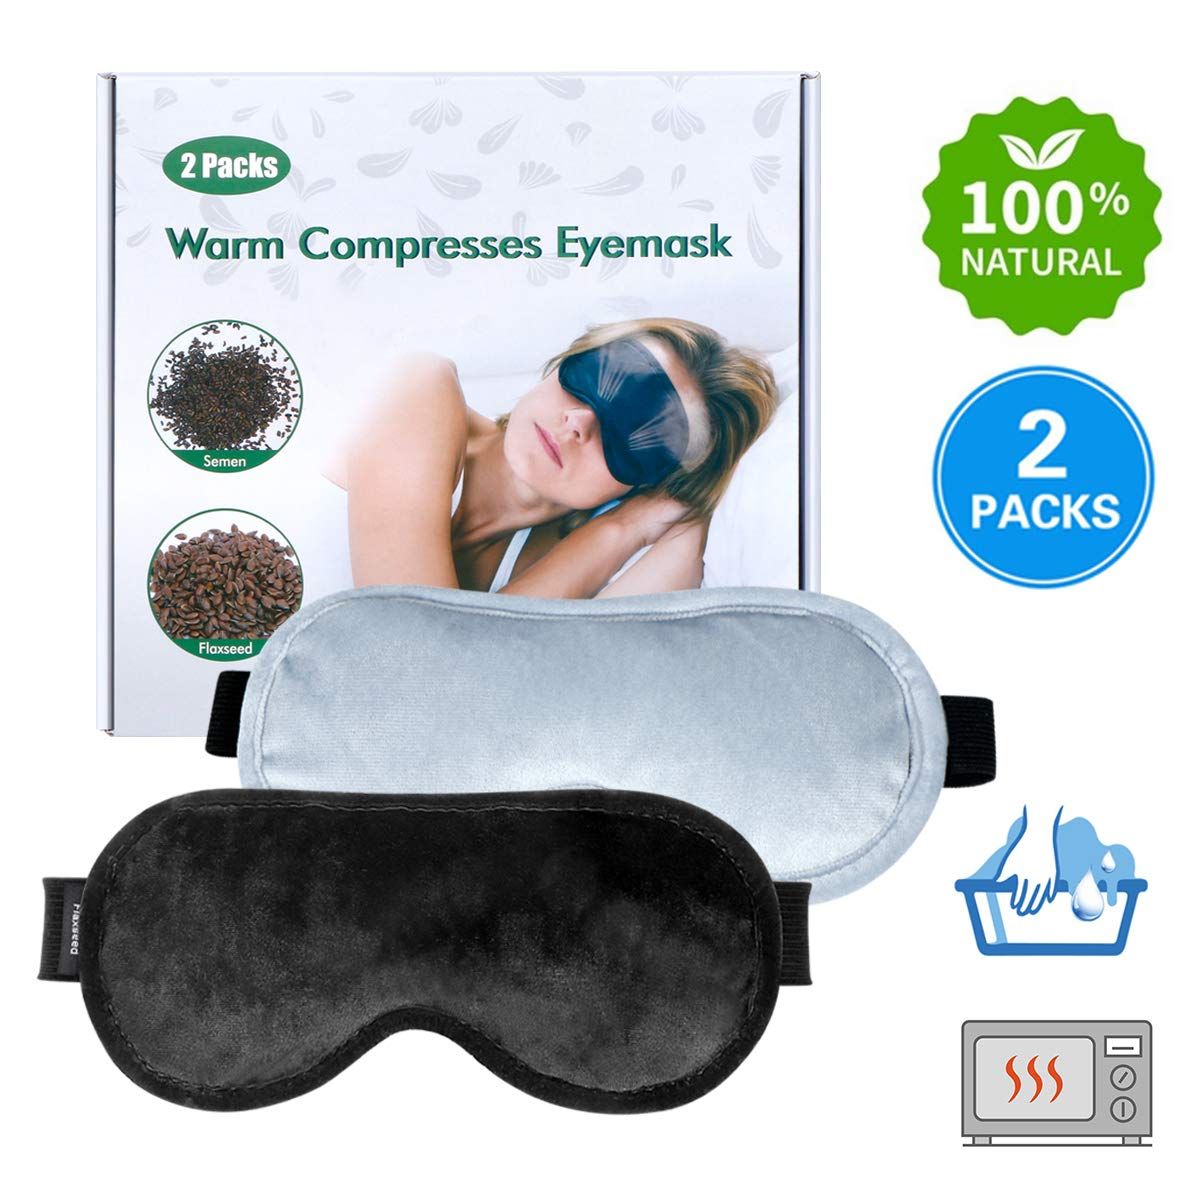 Dry Eye Mask Moist Heat Eye Compress(2 Packs), TOPOINT Microwave Heated Eye Mask for Dry Eyes, Flaxseed Cassia Seed Sleeping Mask